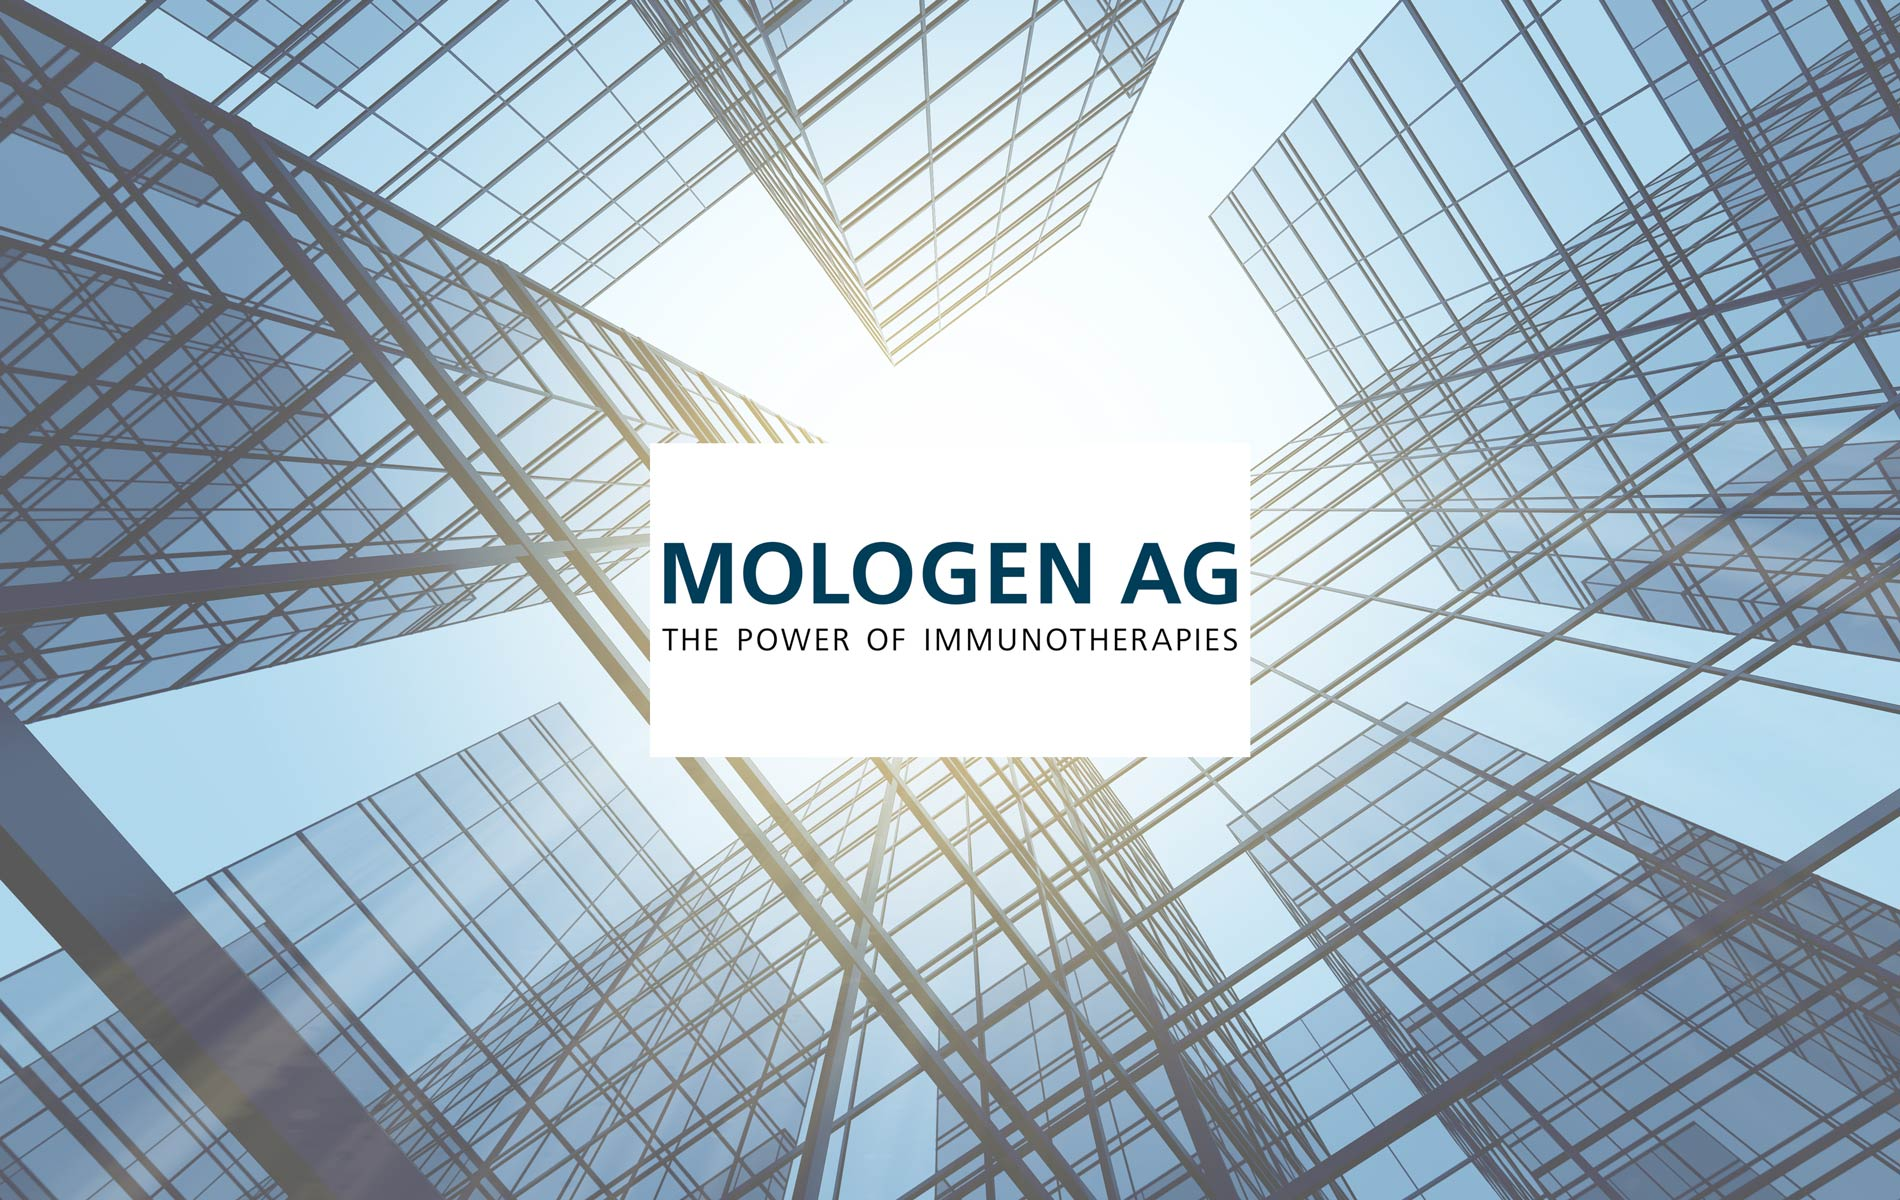 MOLOGEN AG in der Krise